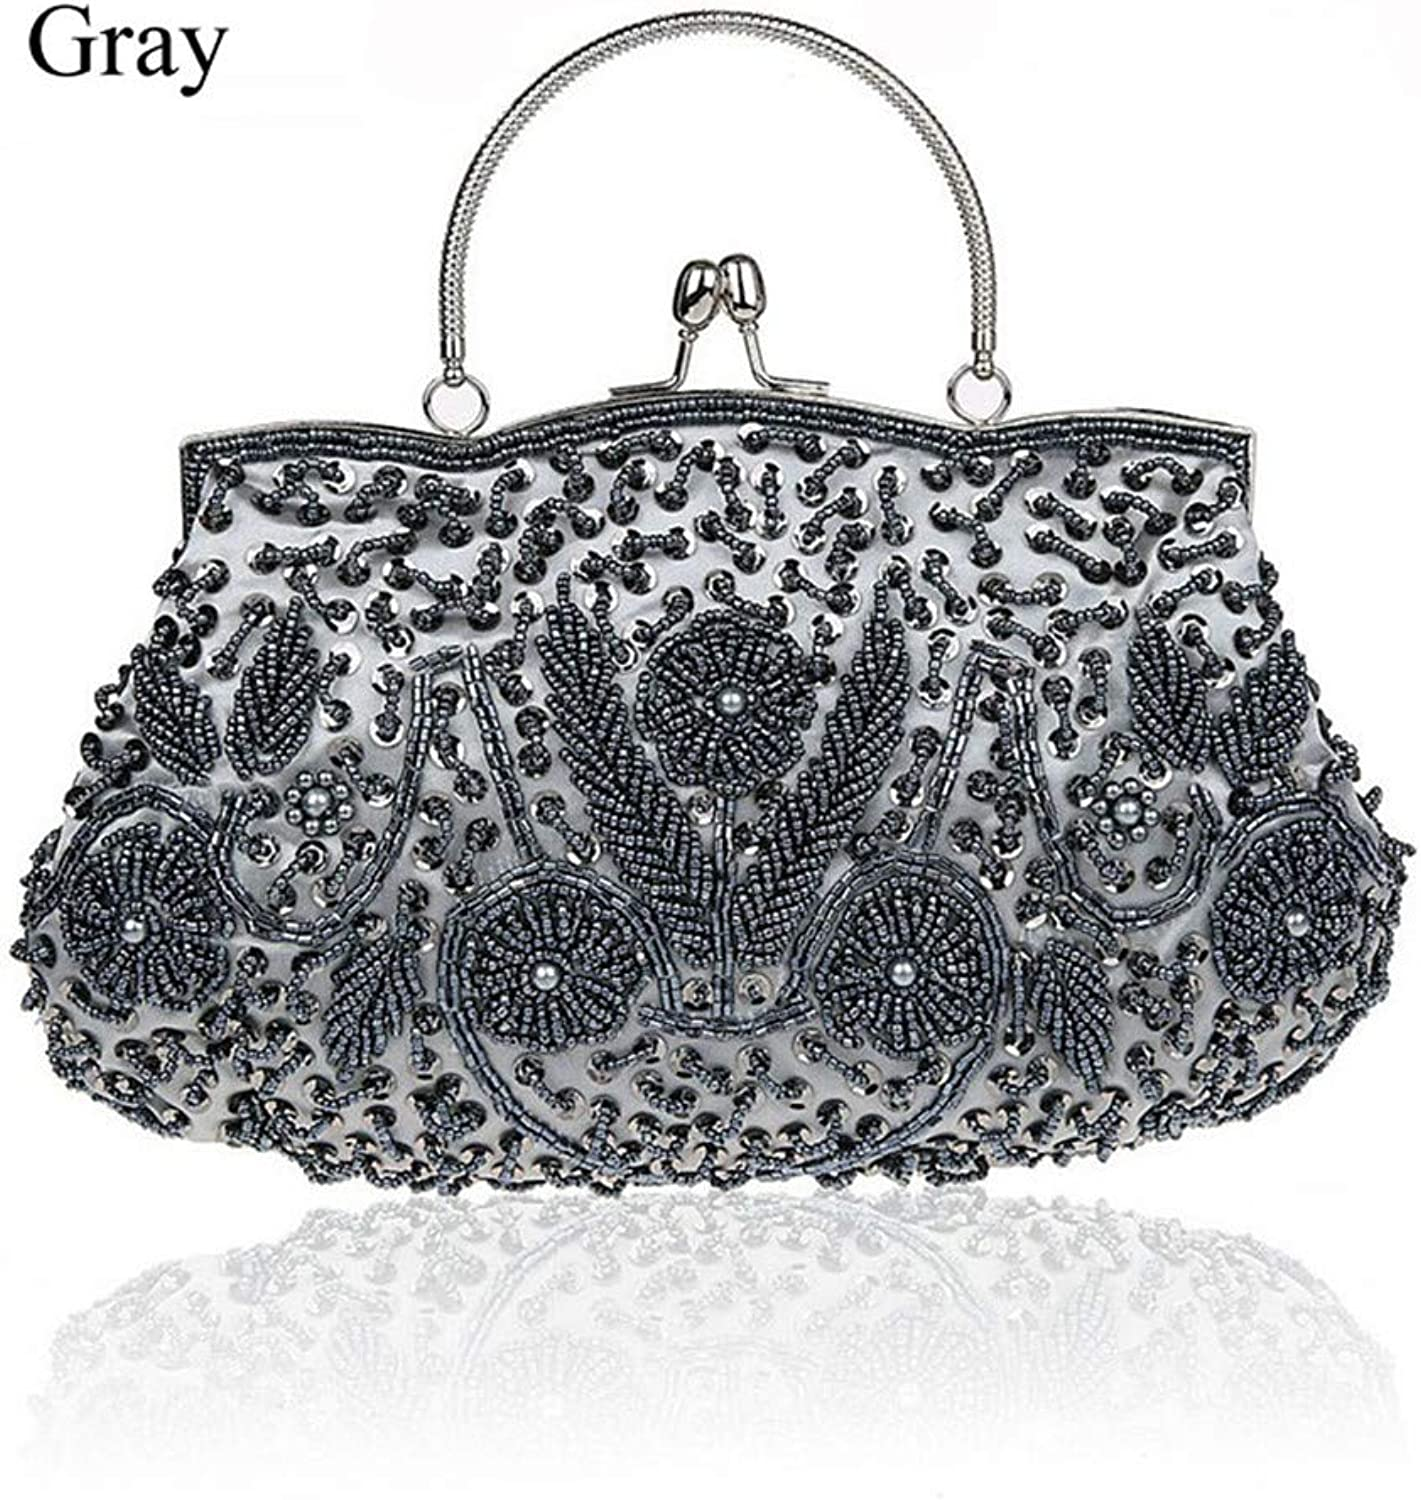 Uekj Clutch Bags Beads Evening Exquisite Ladies Beaded Embroidered Wedding Party Bridal Handbag Wristlet Bolsos Small